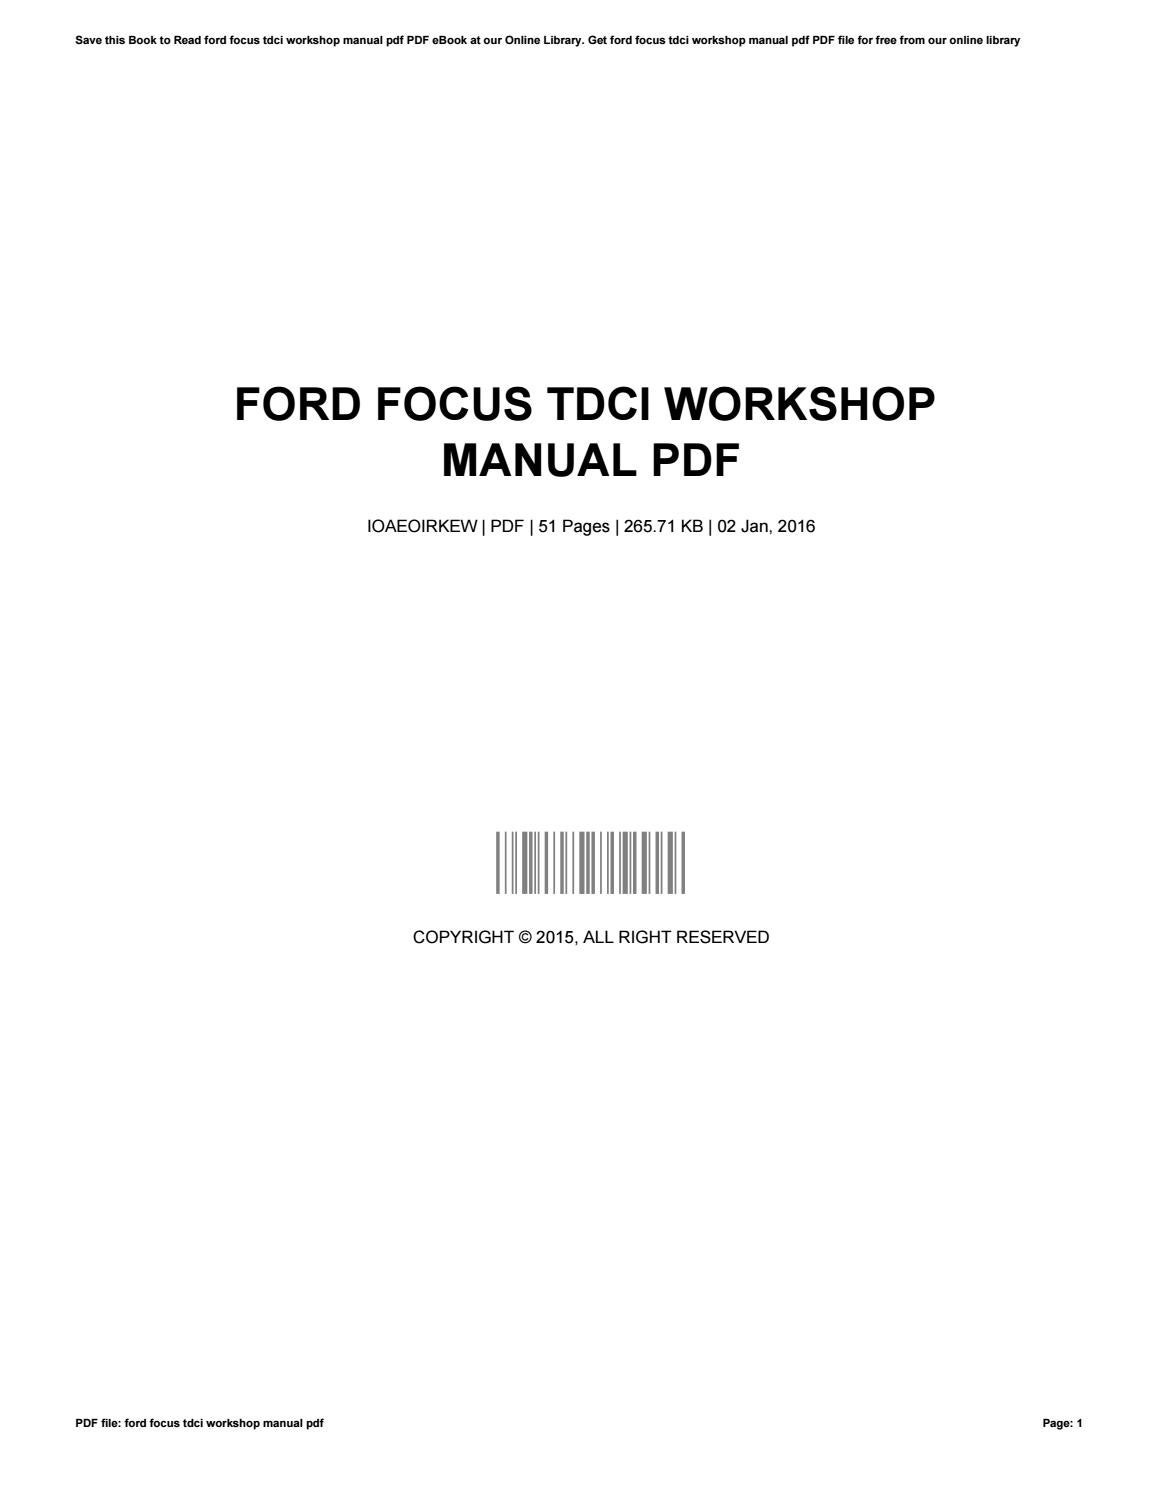 Ford focus diesel workshop manual 98 ebook array pictures print u0026 online ford car repair manuals haynes publishing rh transejecutivodelllano com fandeluxe Image collections